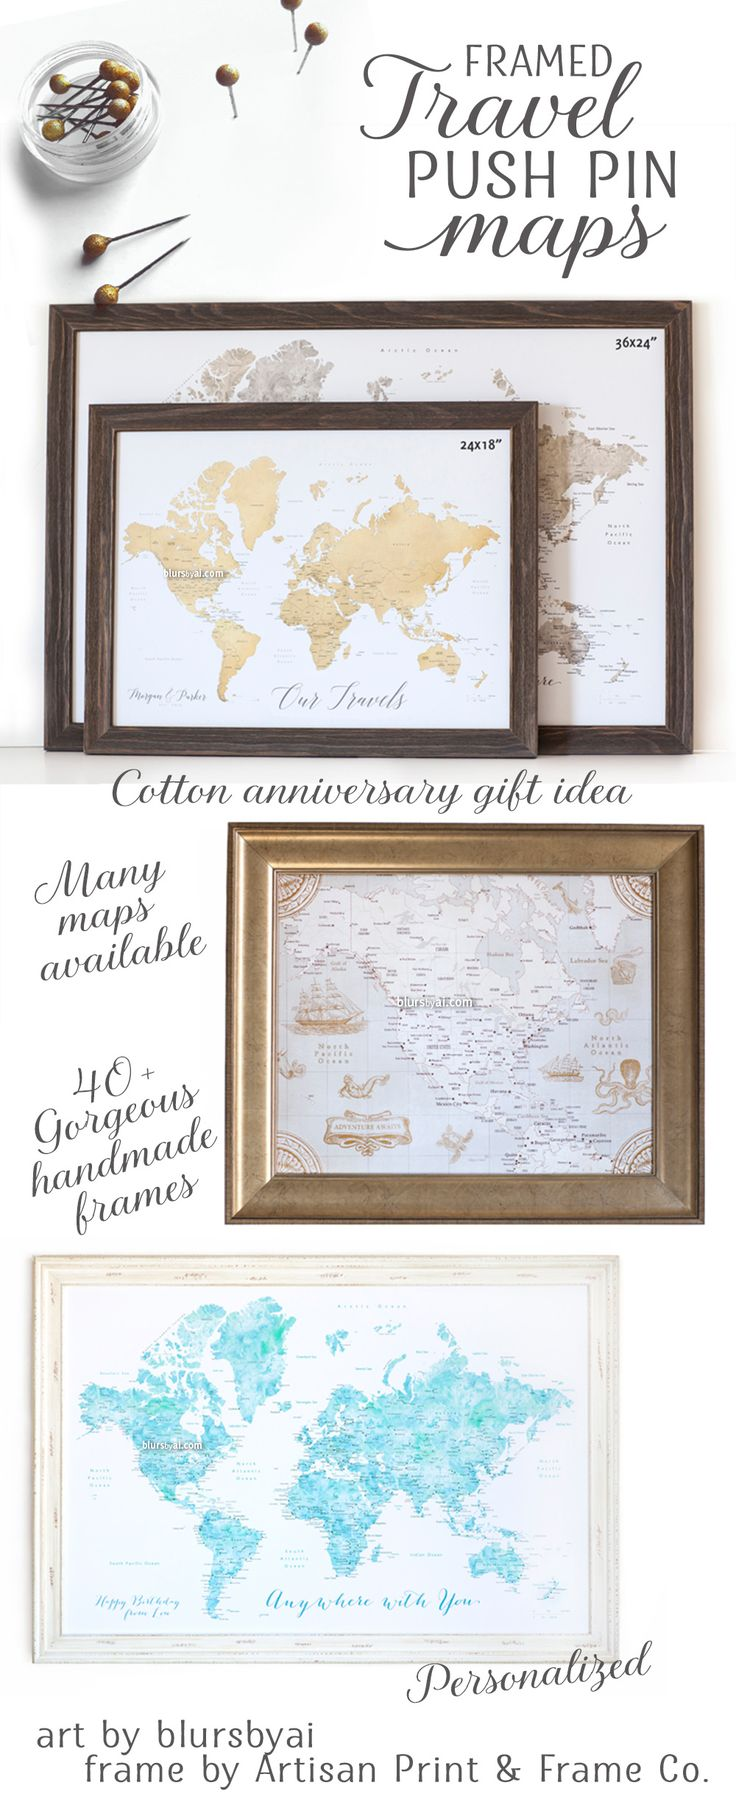 10% off All Personalized Framed Push Pin Maps – blursbyai - Handmade personalized map pinboards for travel couples. World maps with cities labelled